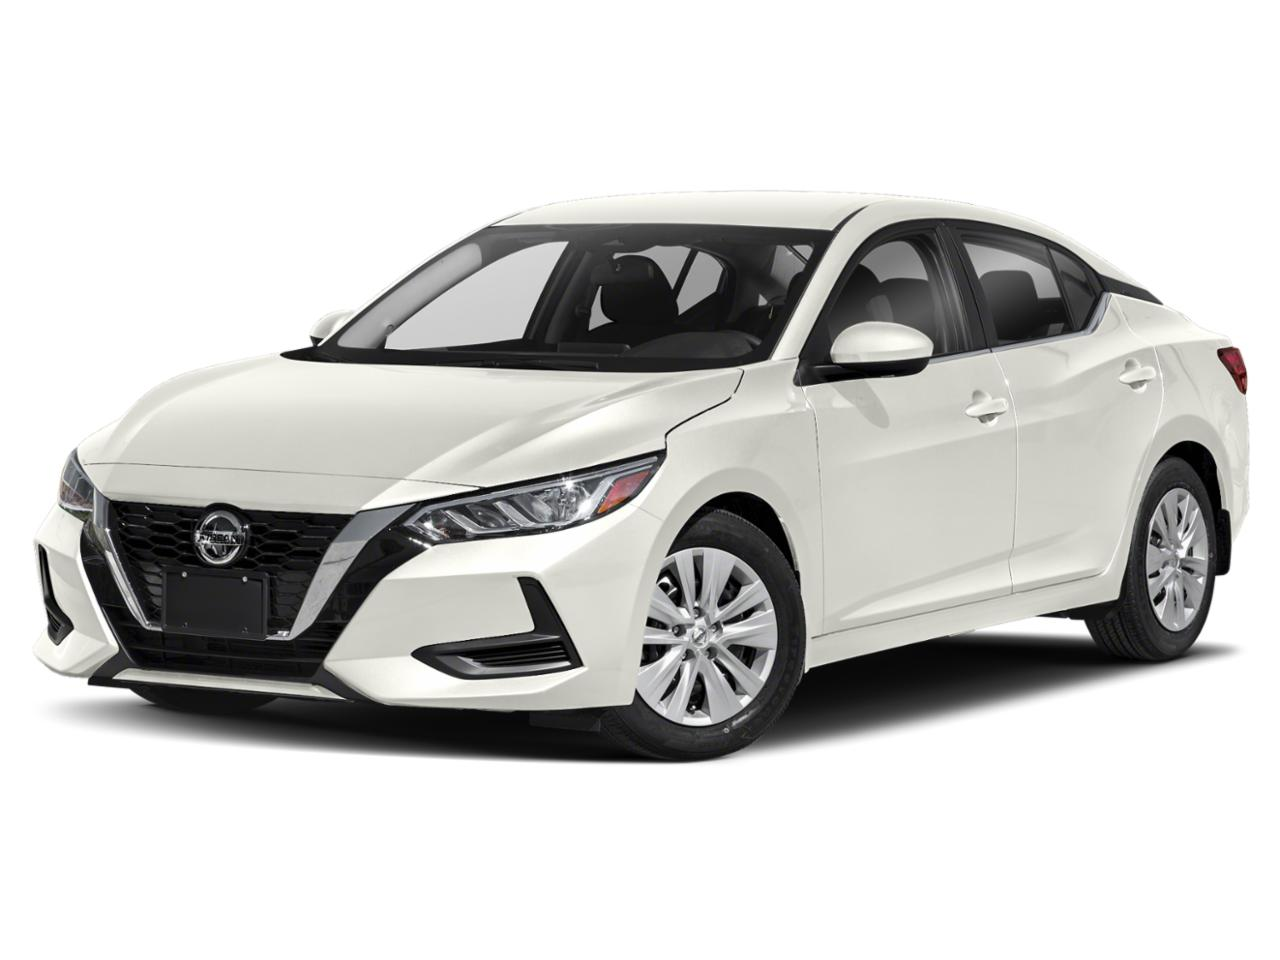 2020 Nissan Sentra Vehicle Photo in Stafford, TX 77477